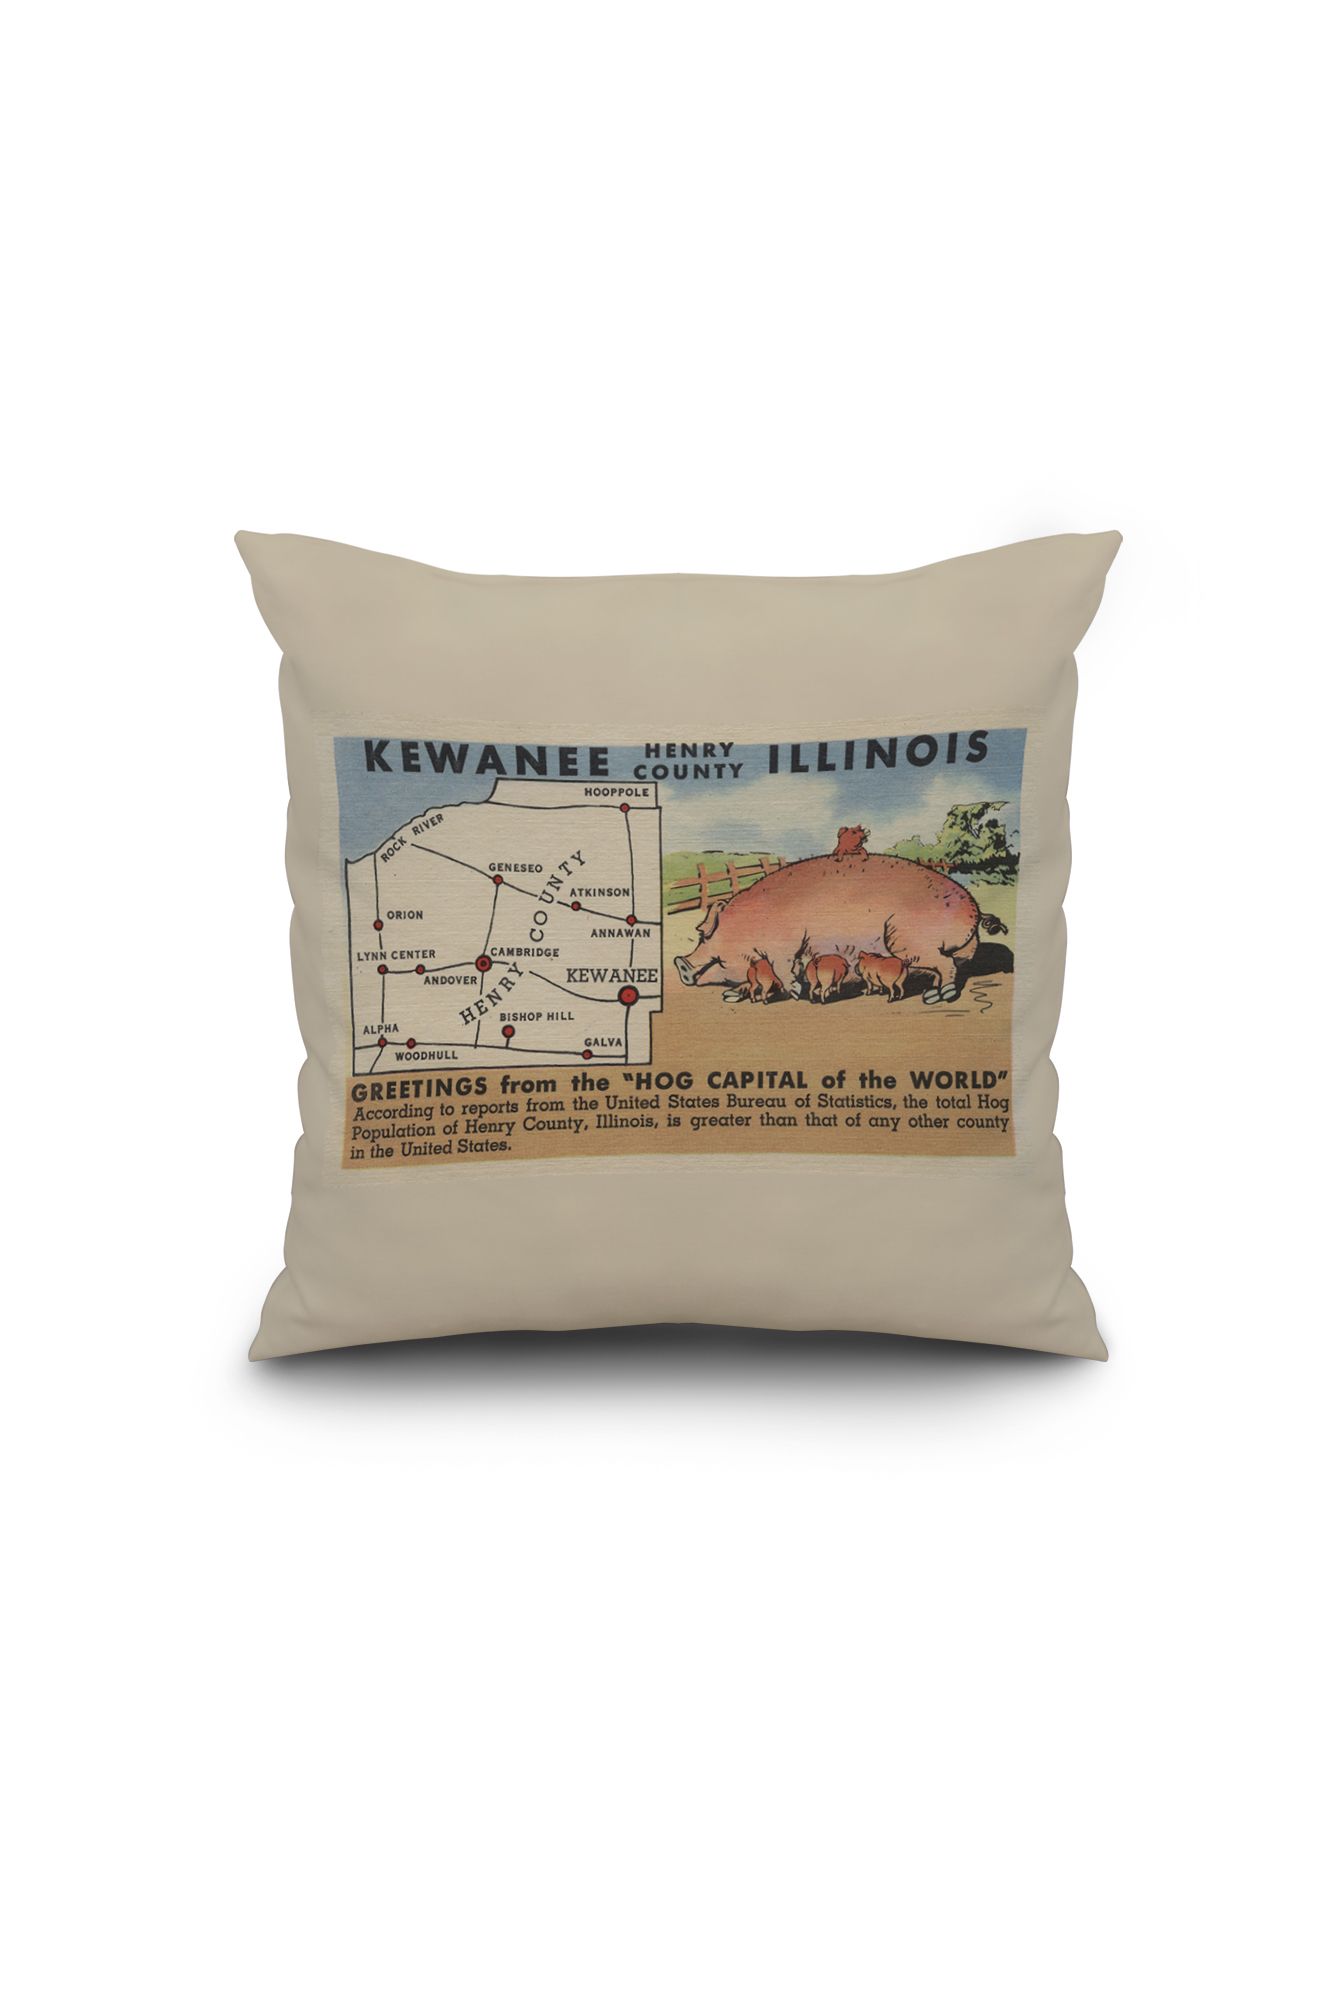 Illinois henry county andover - Kewanee Illinois Greetings From The Hog Capital Of The World 16x16 Spun Polyester Pillow Black Border Walmart Com